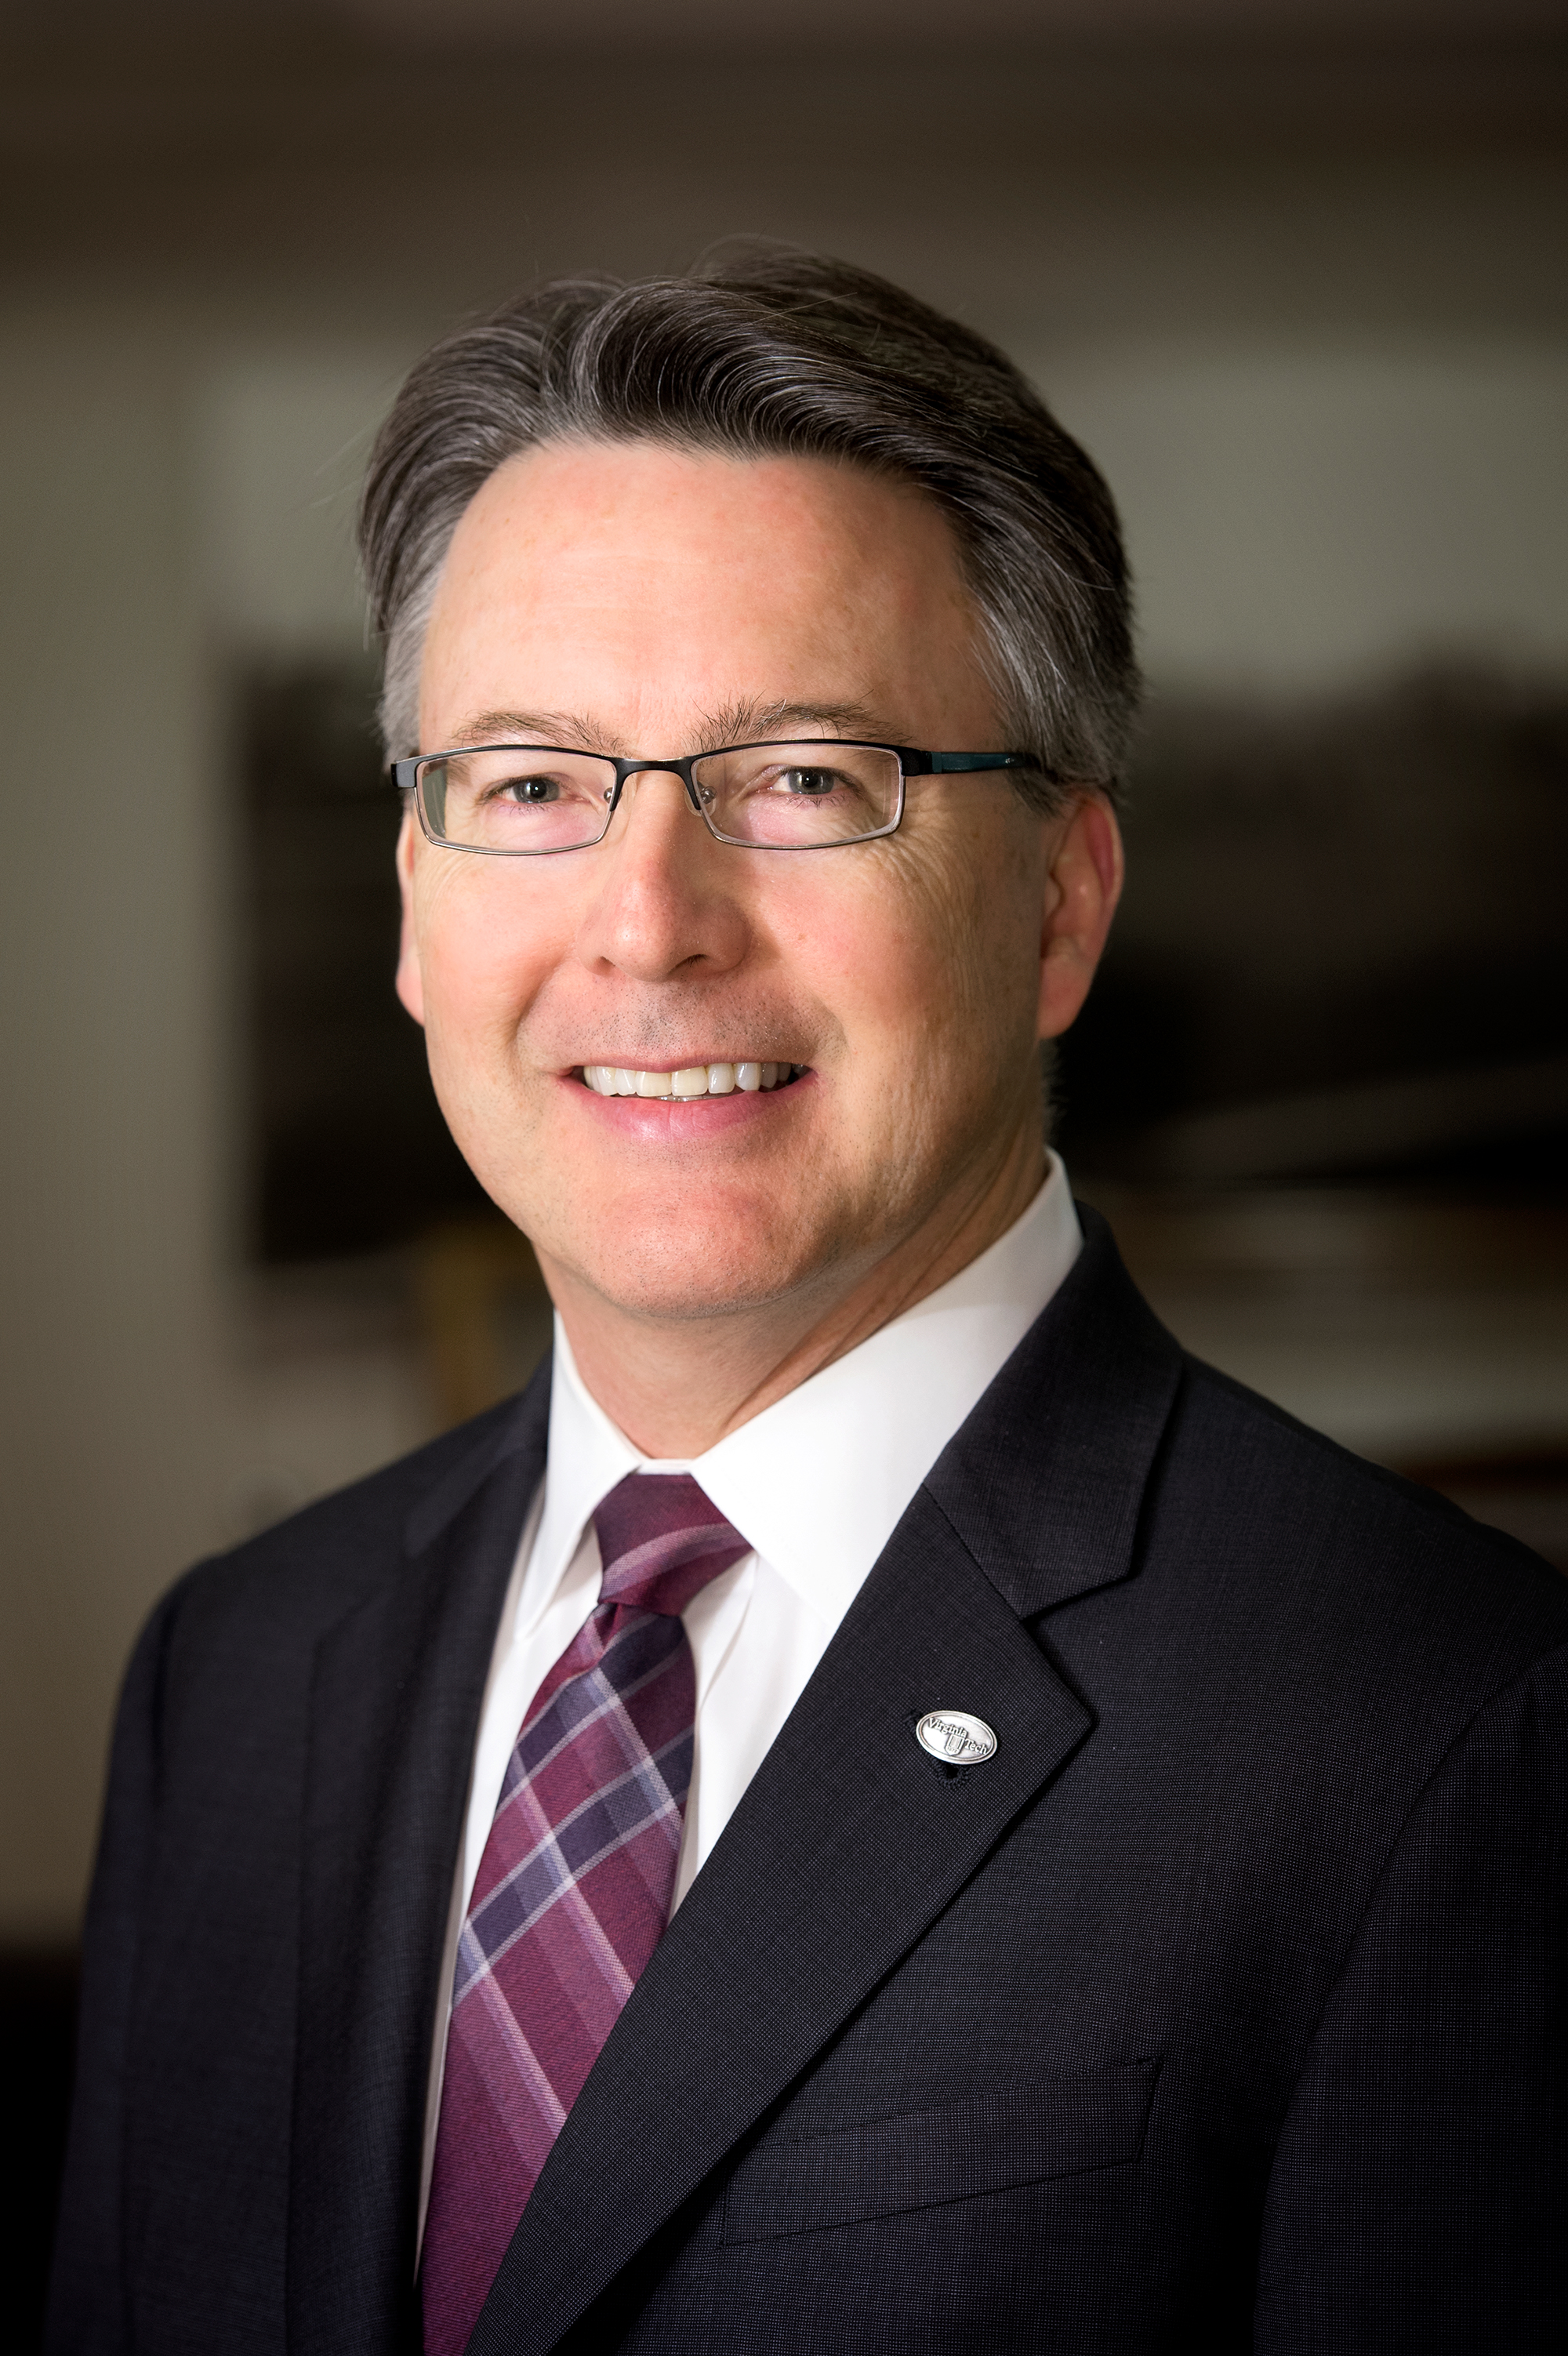 Biography of president tim sands office of the president - Define executive office of the president ...